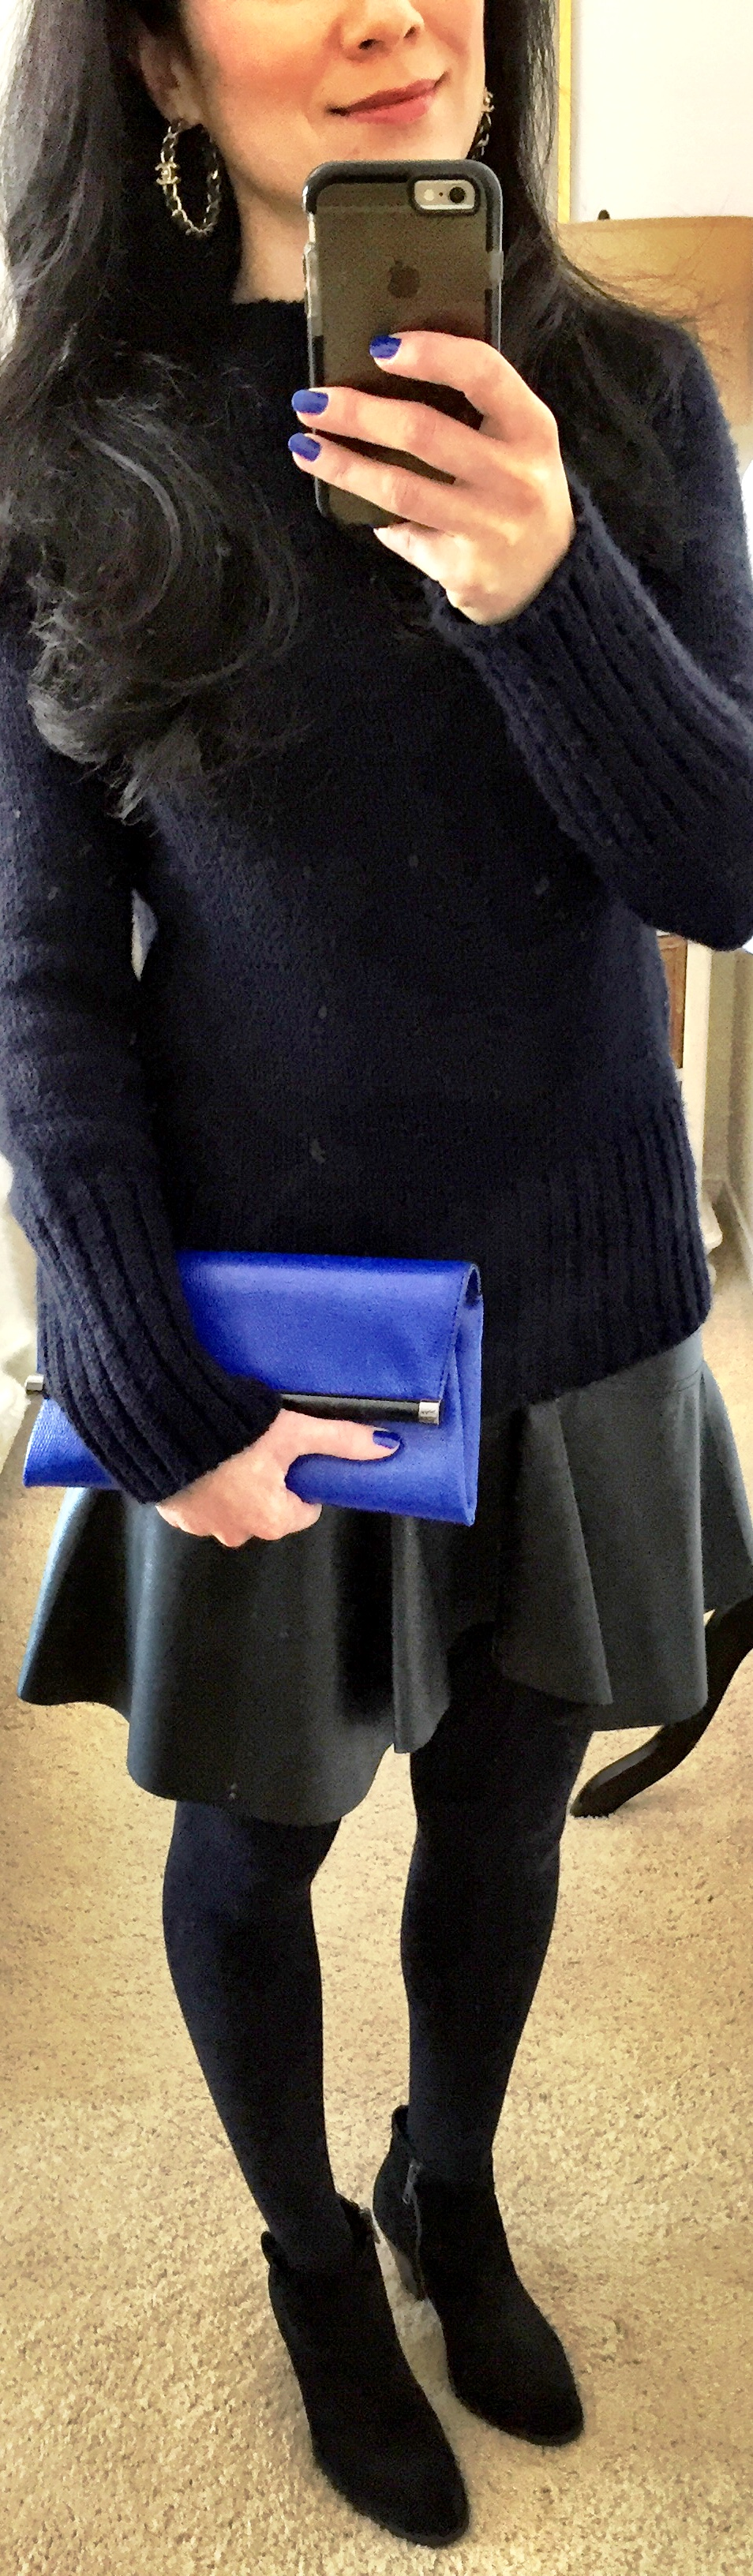 February 4, Leather Skirt with Navy Sweater